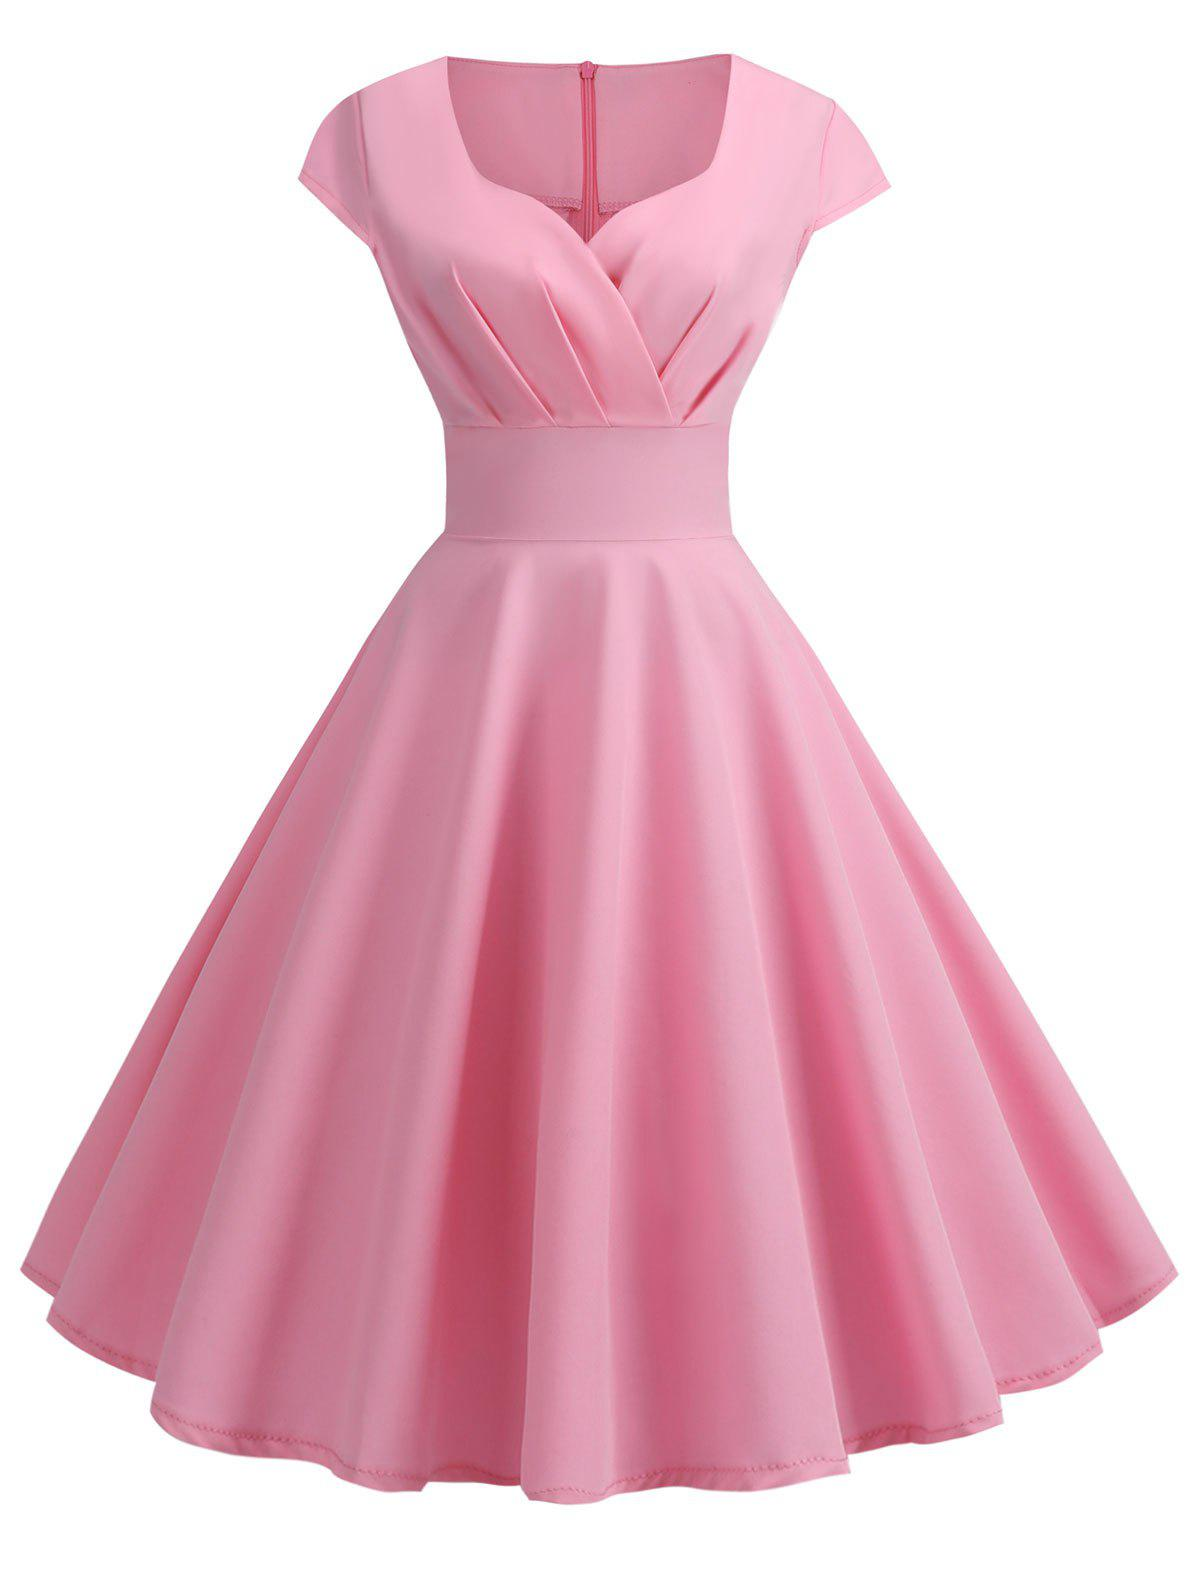 Sweetheart Neck Vintage Rockabilly Style Fit and Flare Dress - PINK XL